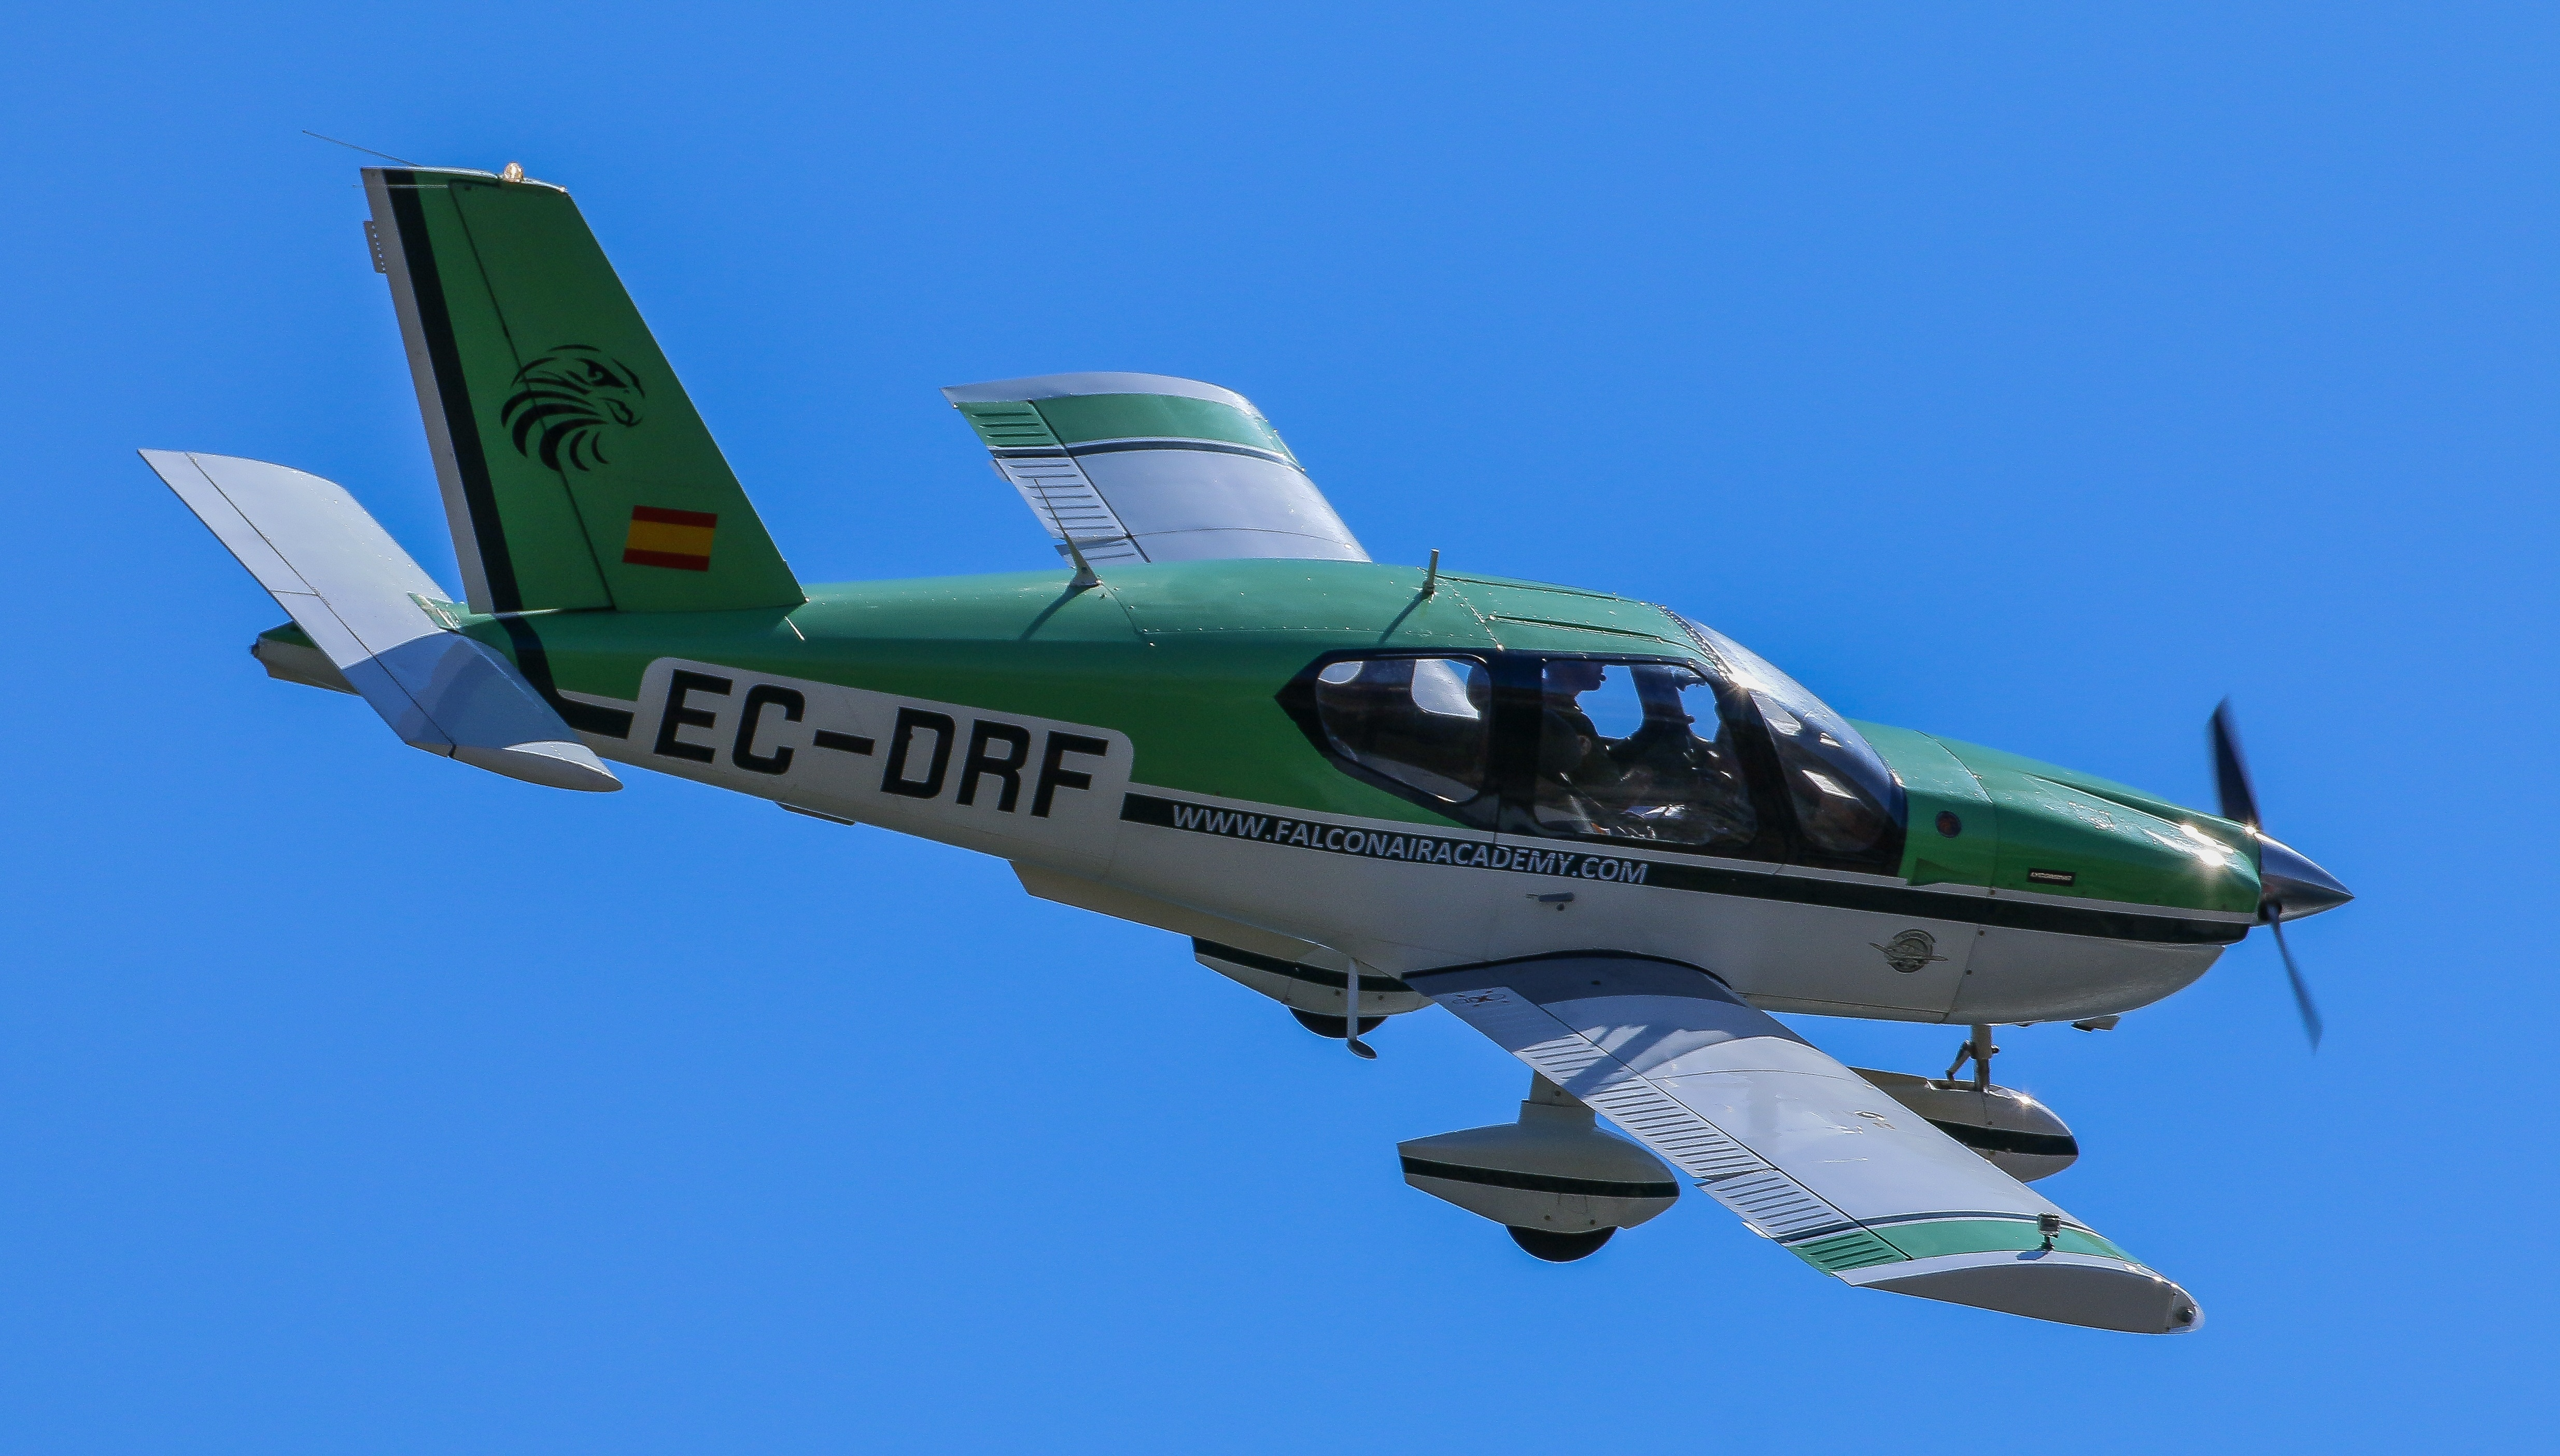 Small green airplane.